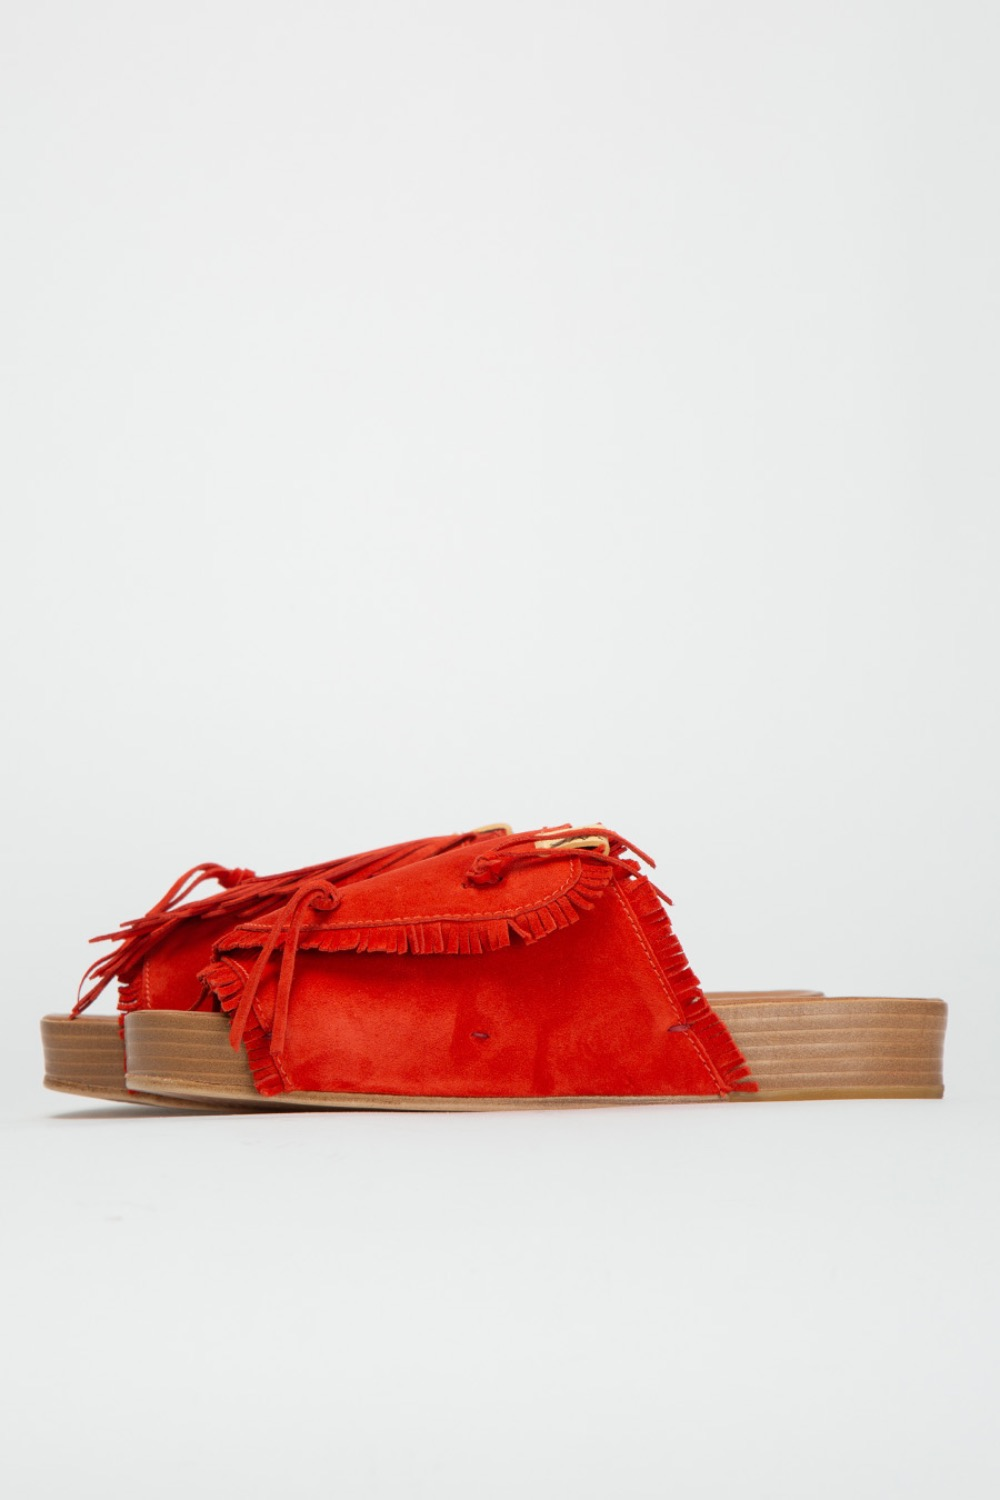 CHRISTO SHAMAN-FOLK RED